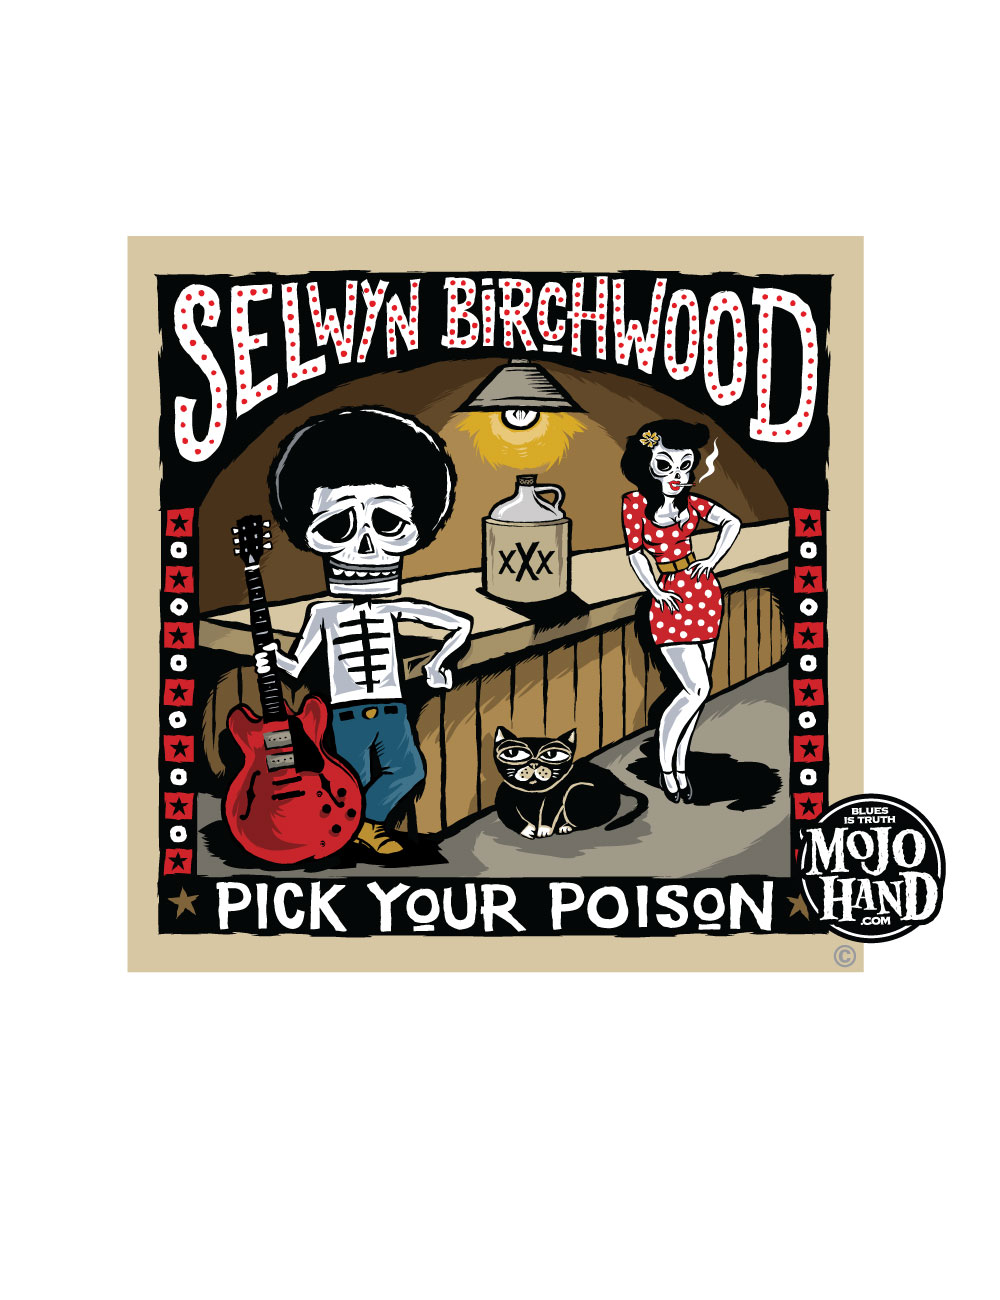 selwyn birchwood pick your poison - cover art by Grego Anderson - Mojohand.com